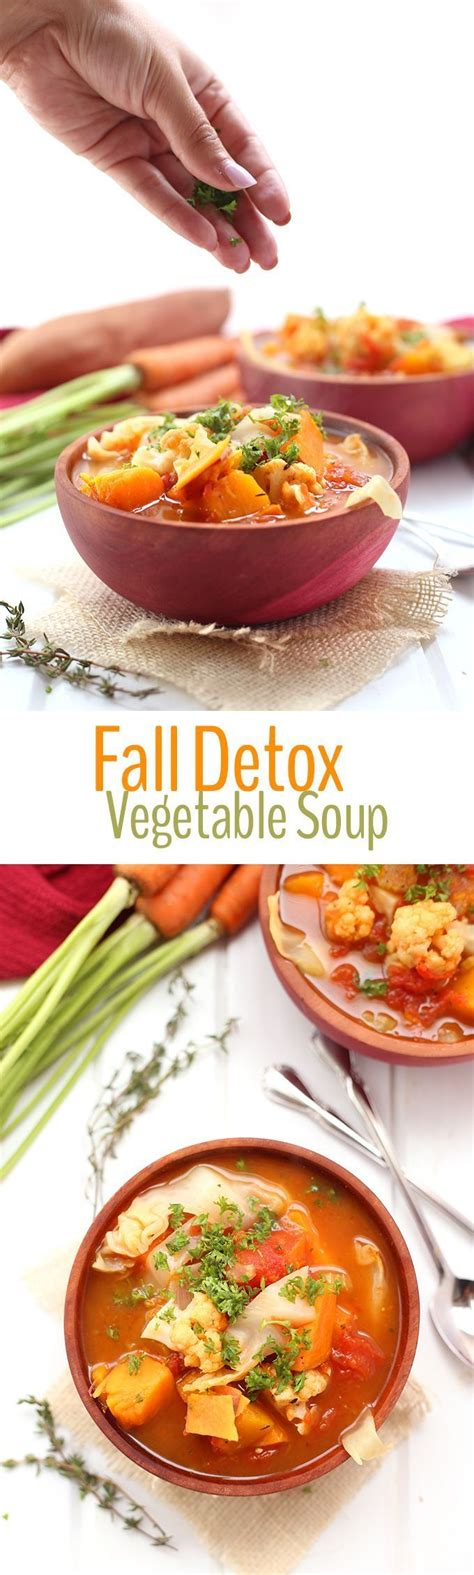 What Of Vegetable Detox You by Different Vegetables Detox And Vegetables On